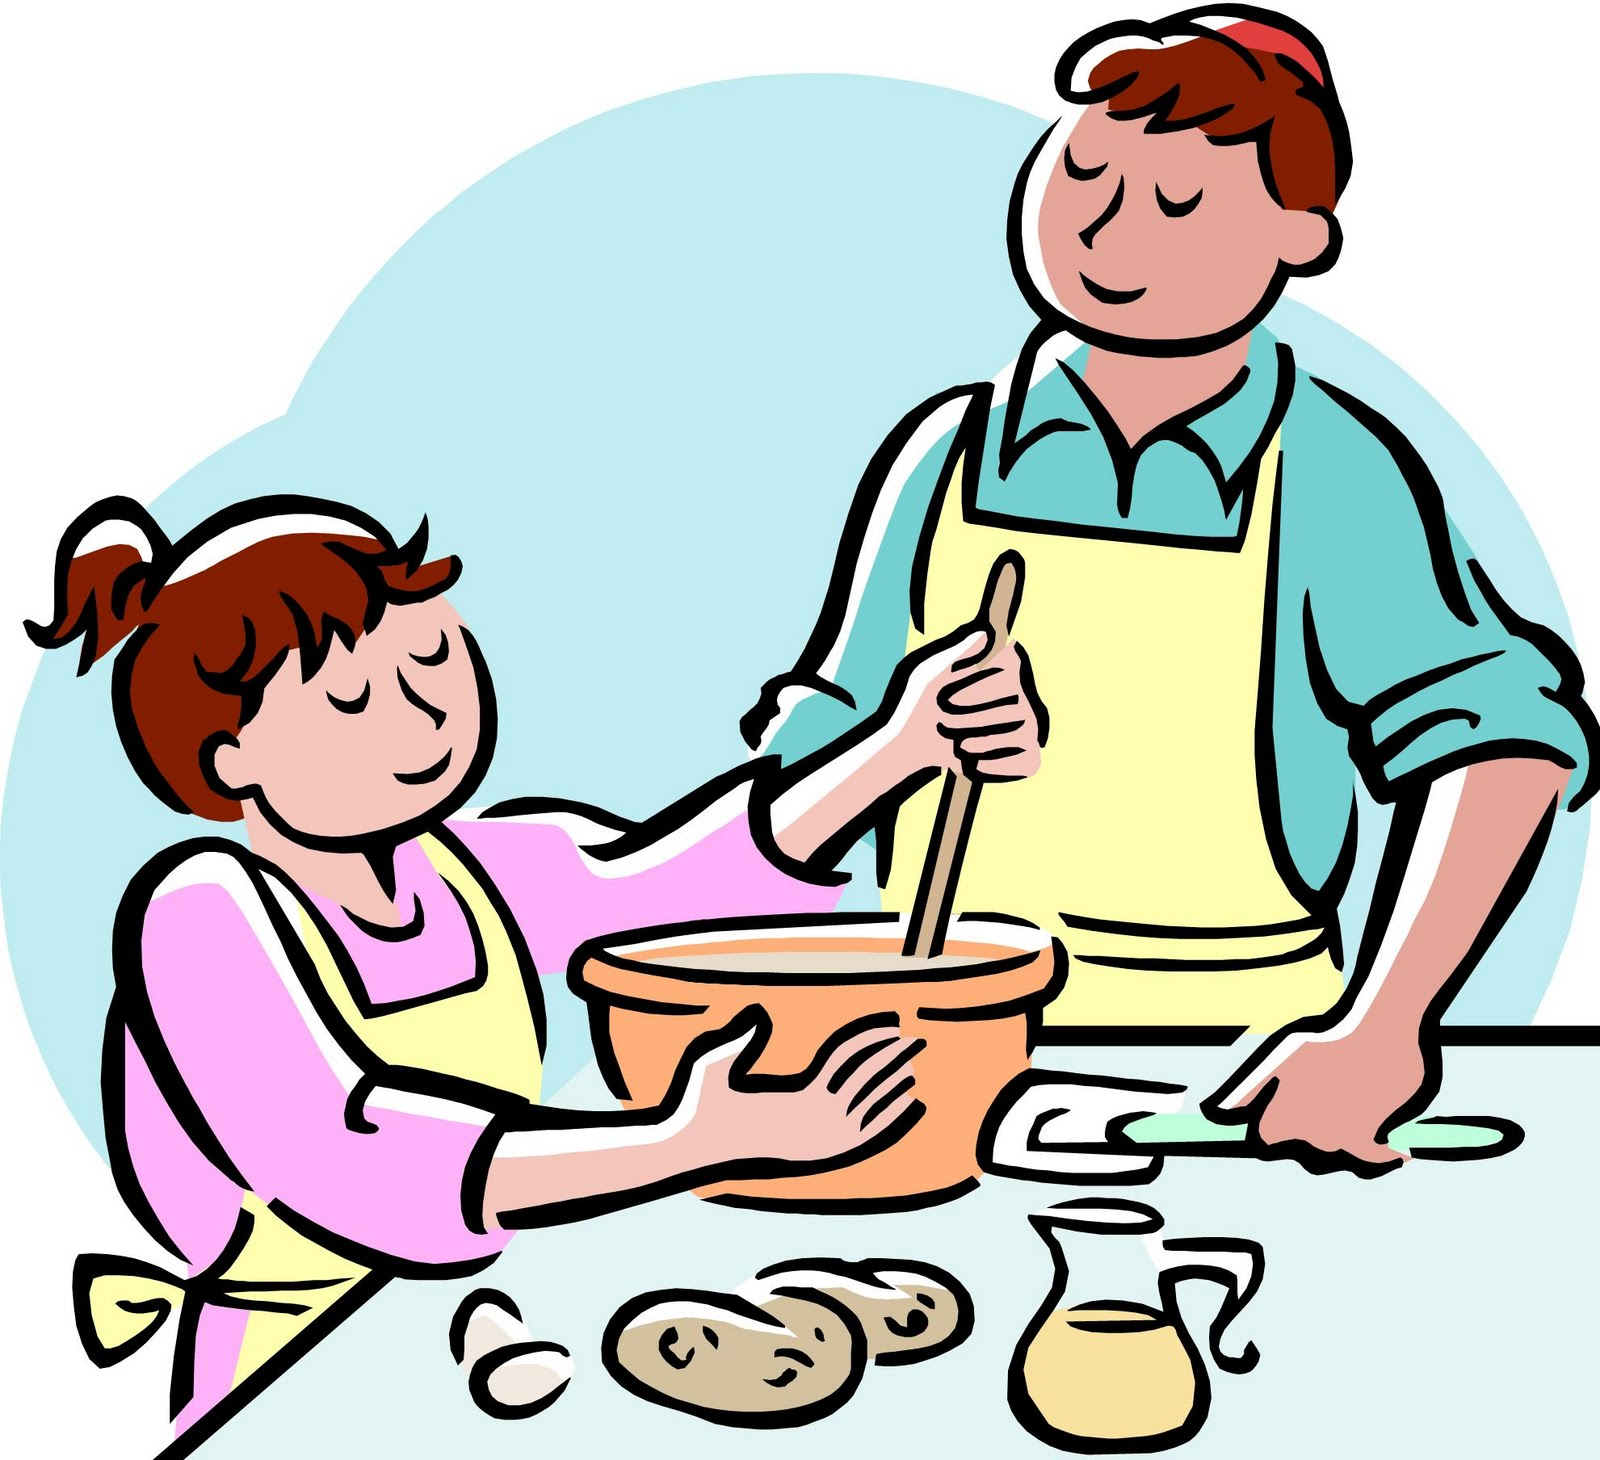 Mom and daughter baking clipart black and white svg freeuse download Free Cooking Class Cliparts, Download Free Clip Art, Free Clip Art ... svg freeuse download